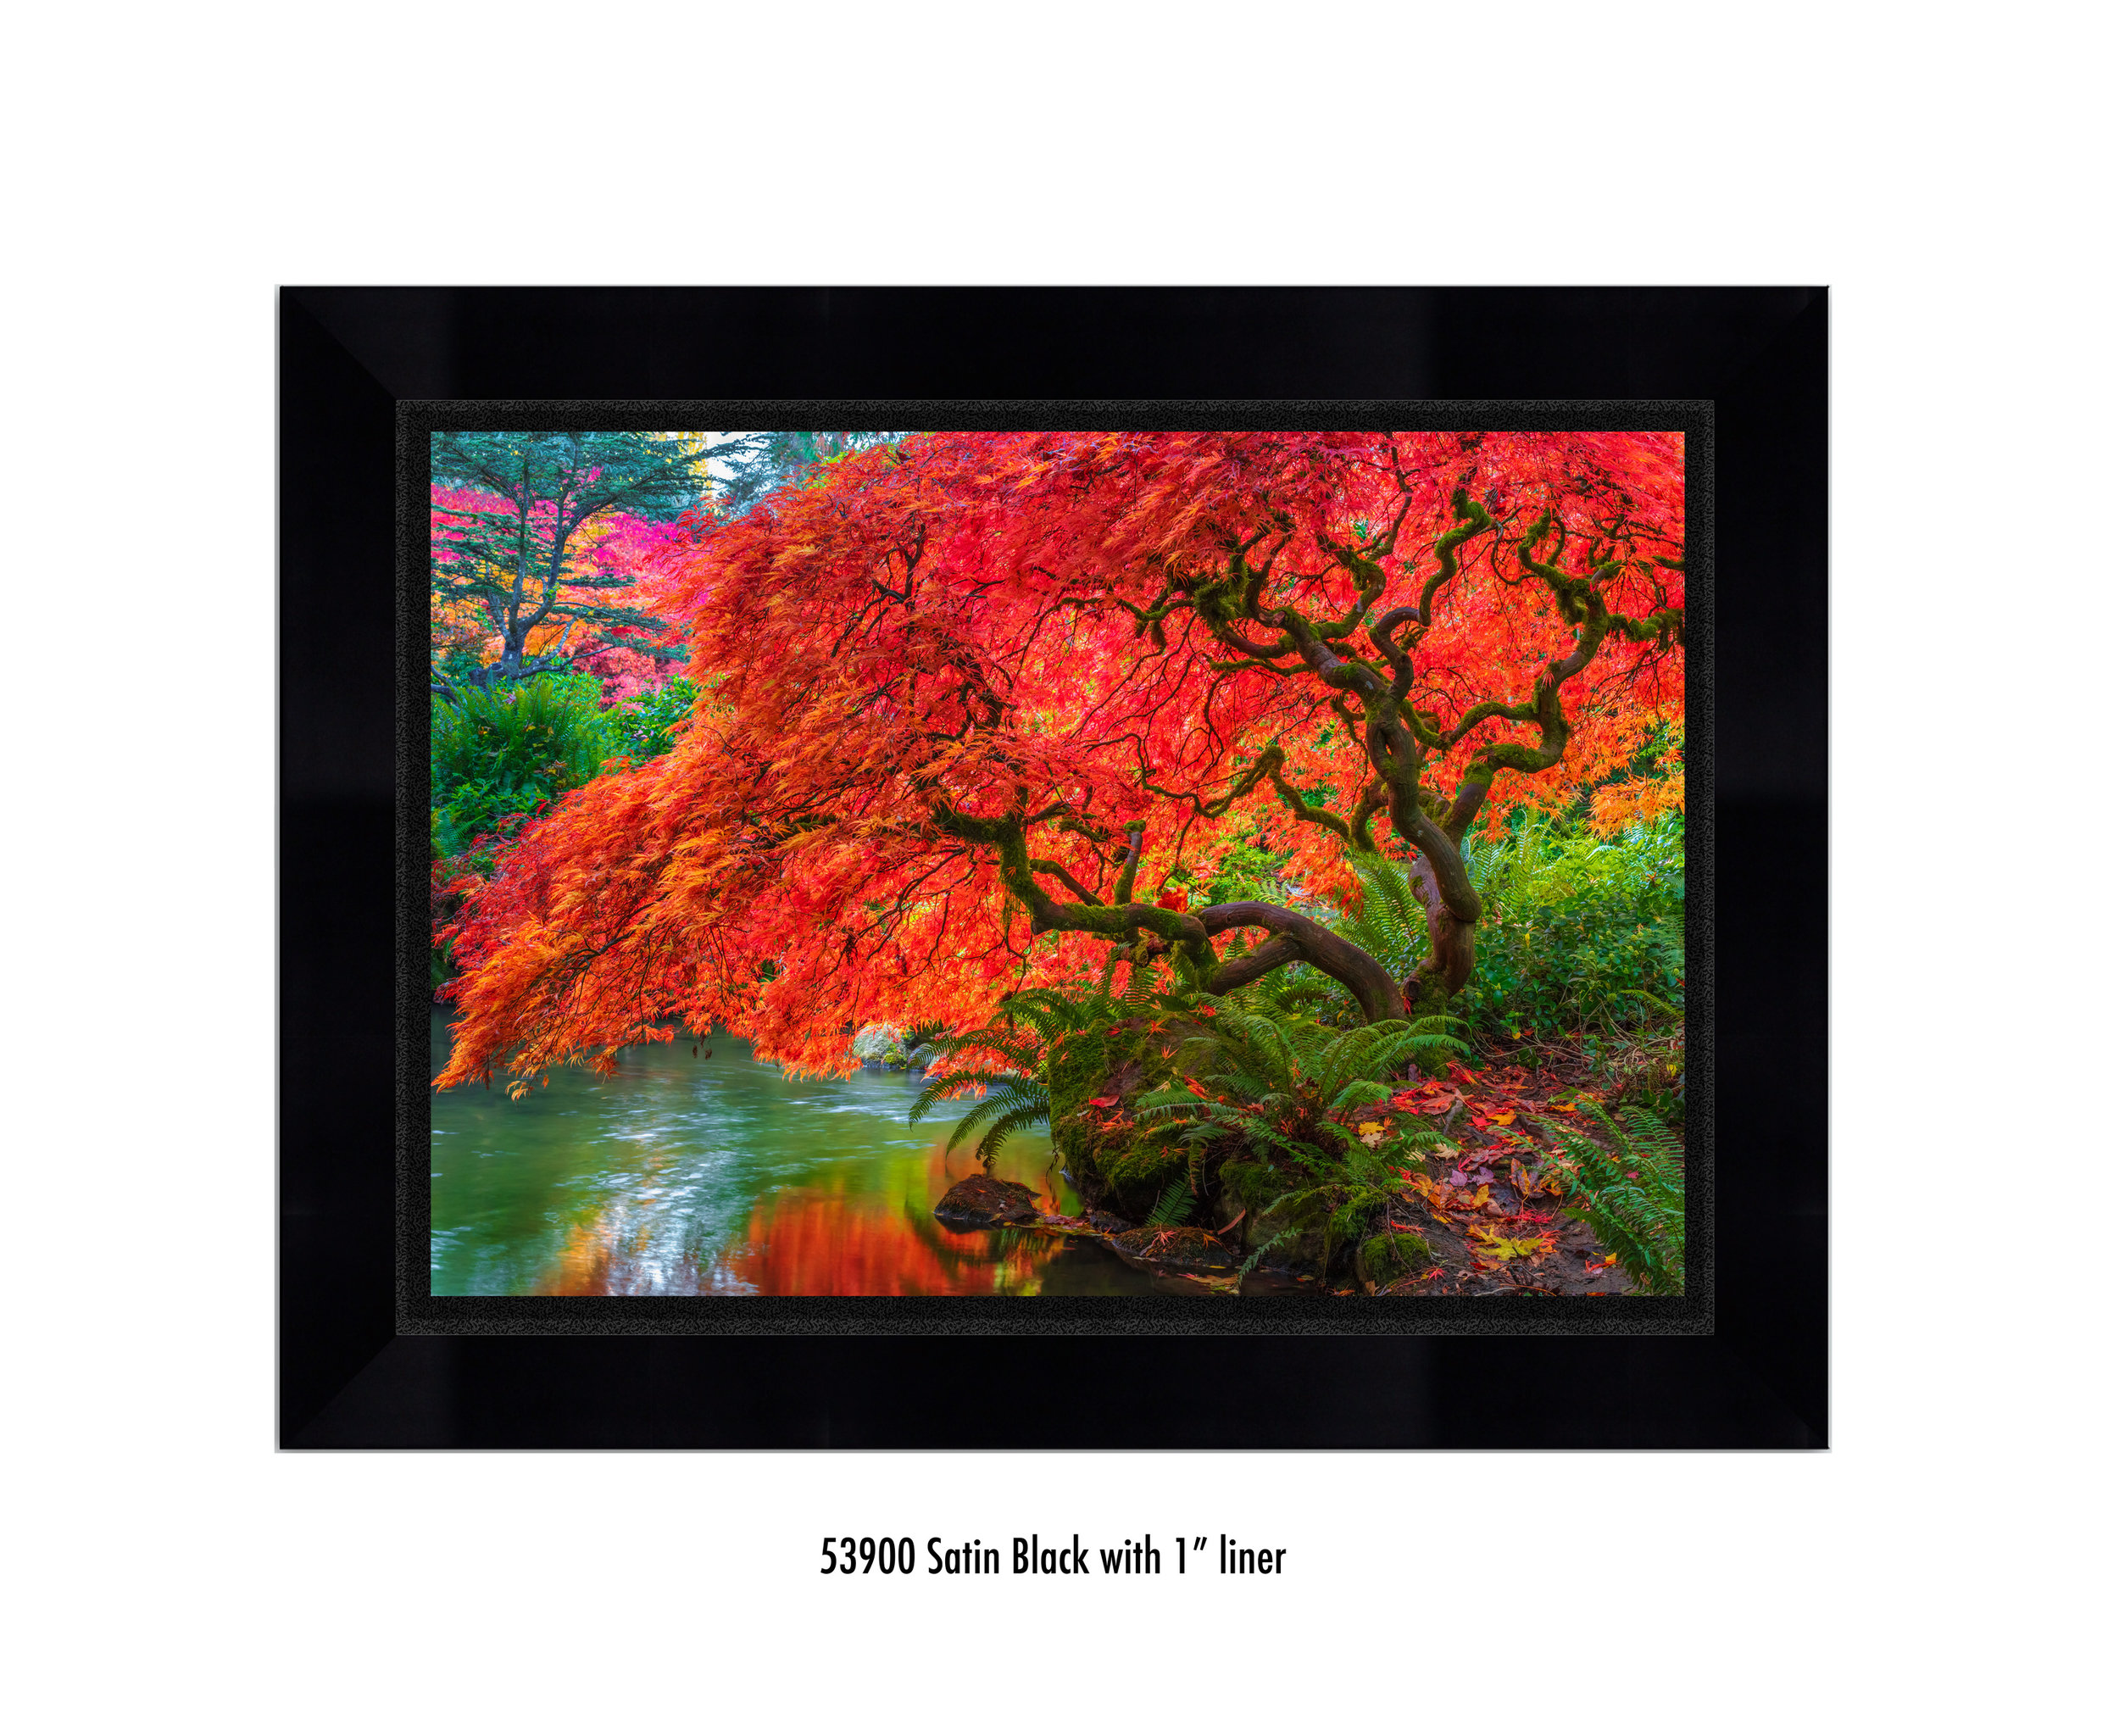 Tree-of-Fire-59300-1-blk.jpg